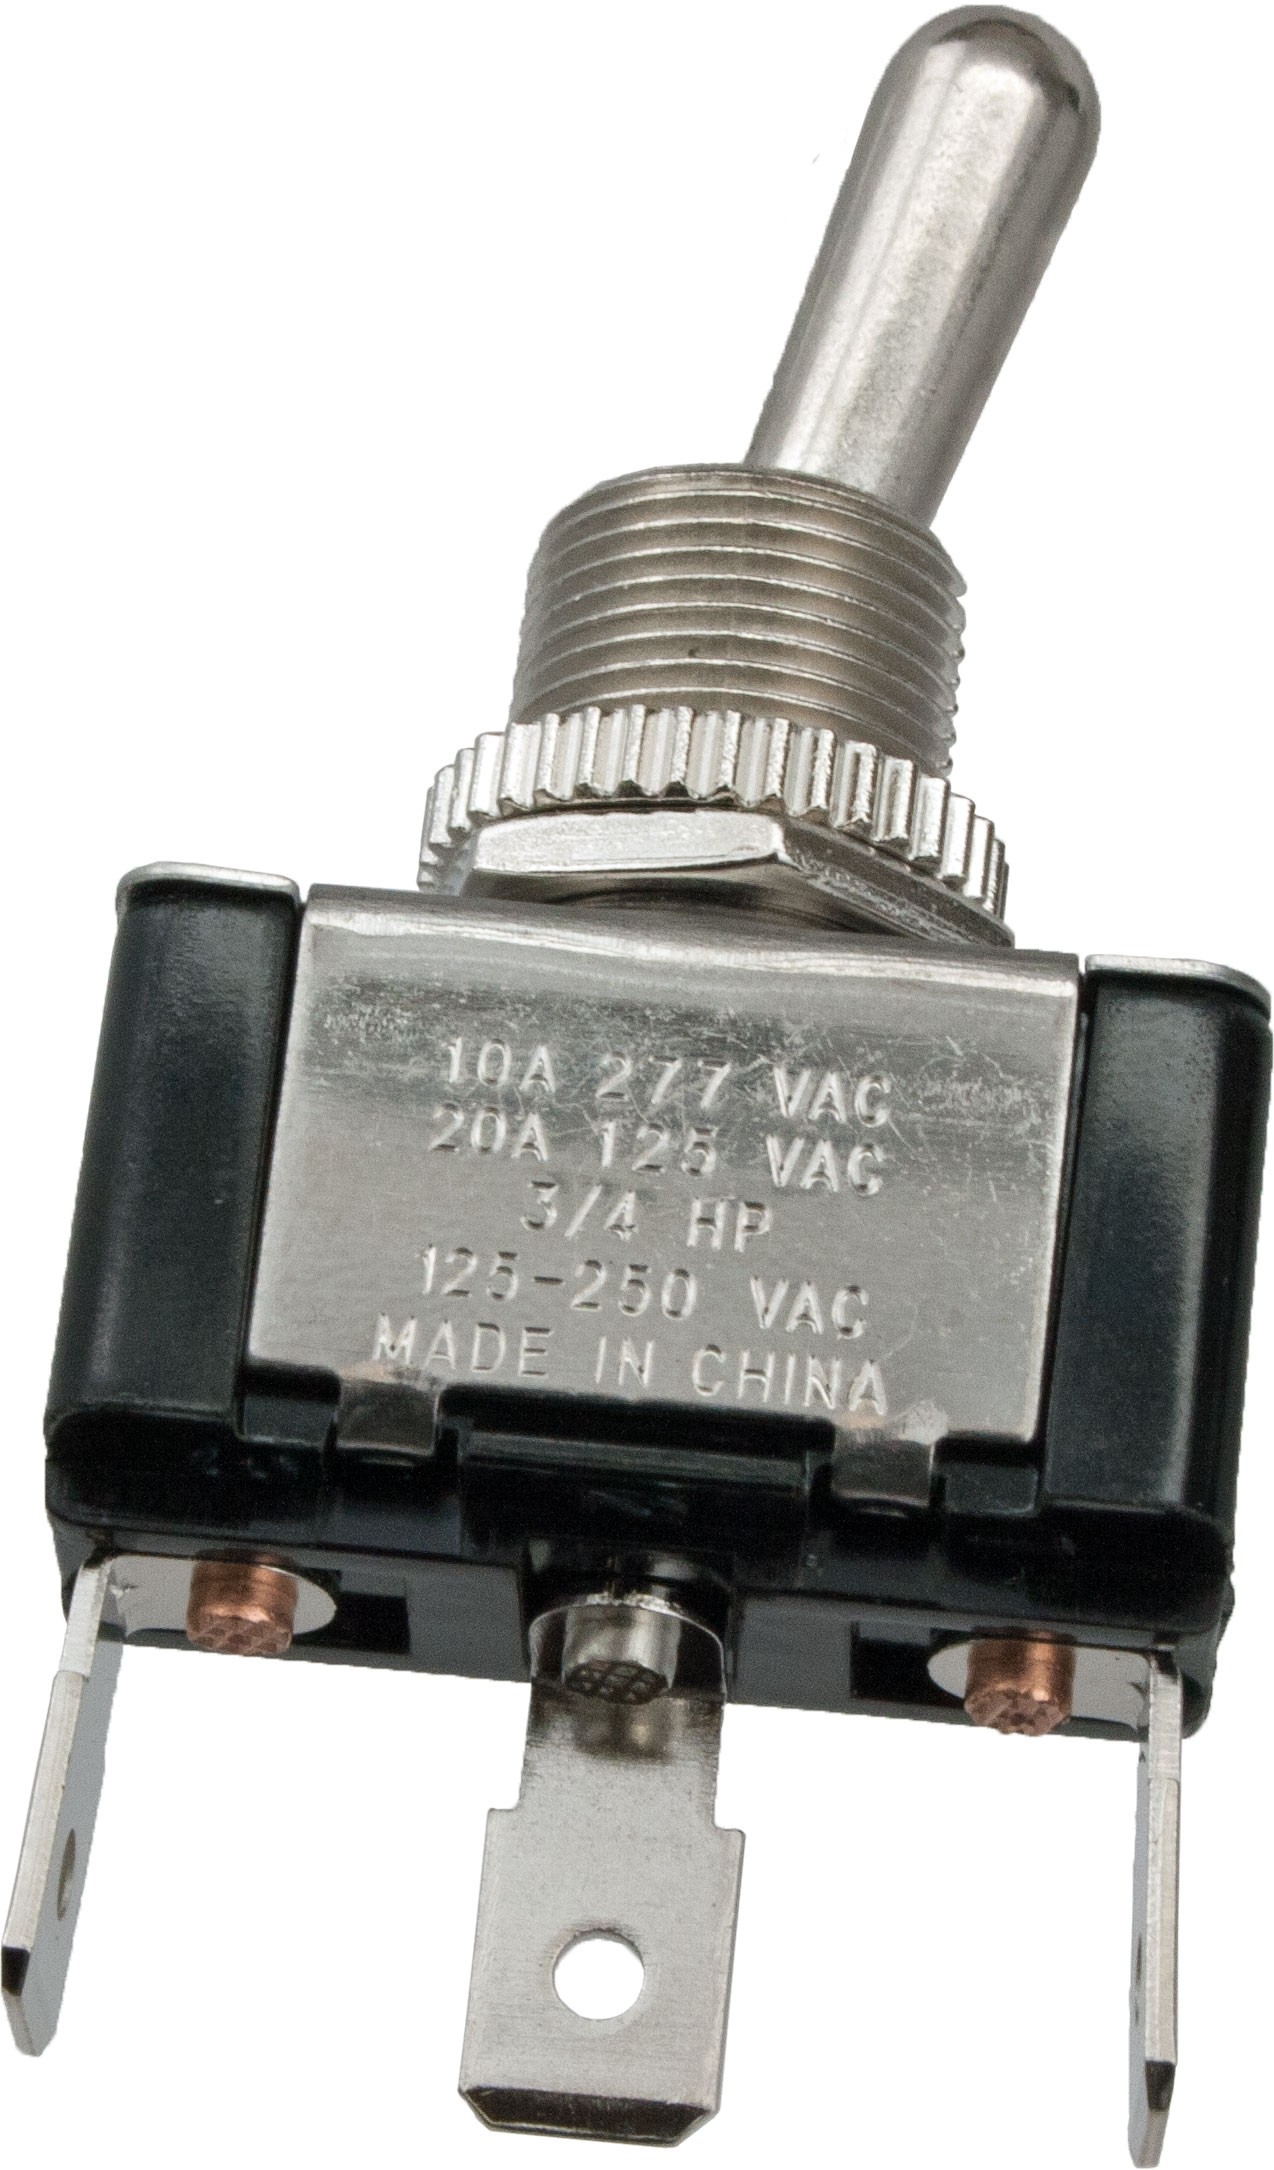 3 Blade Terminal Toggle Switch ON-OFF-ON SPDT | 765056 | ElecDirect